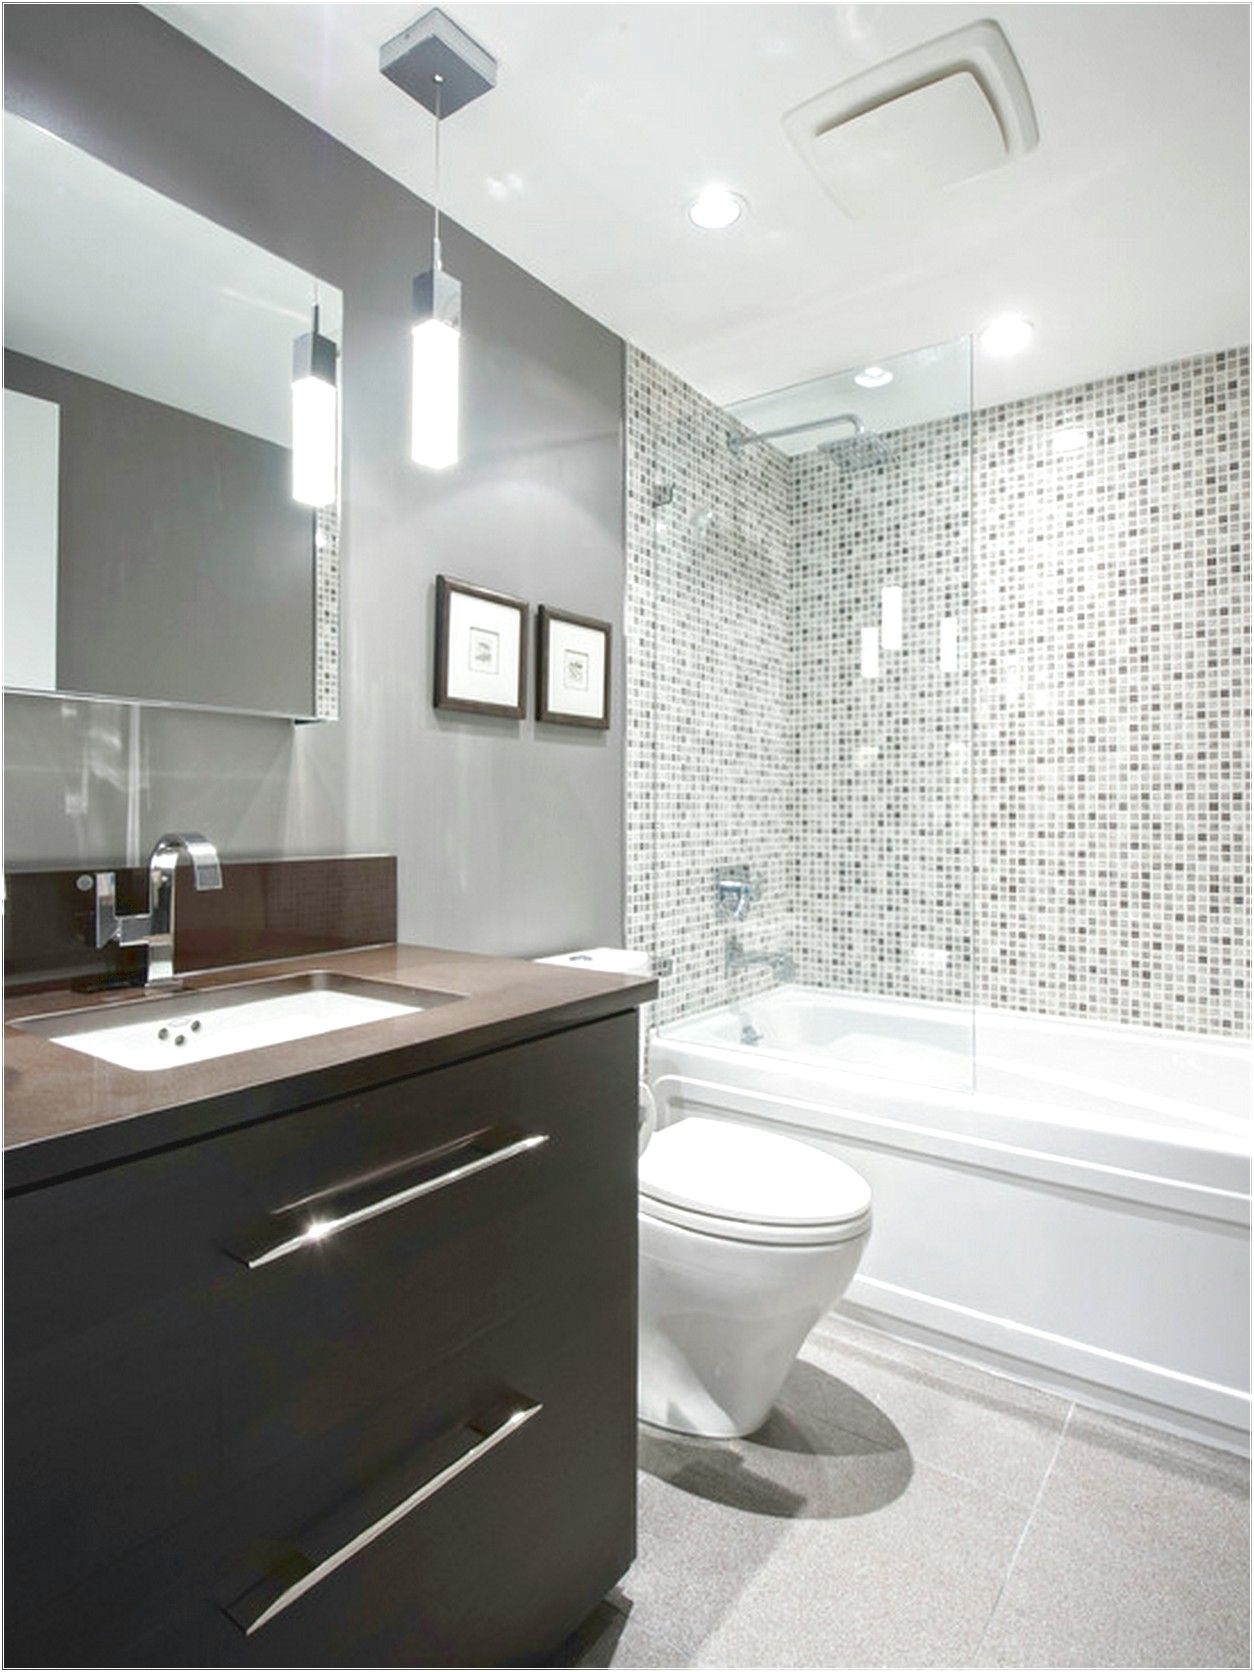 Stick On Wall Tiles Bathroom | bathroom ideas | Pinterest | Wall ...